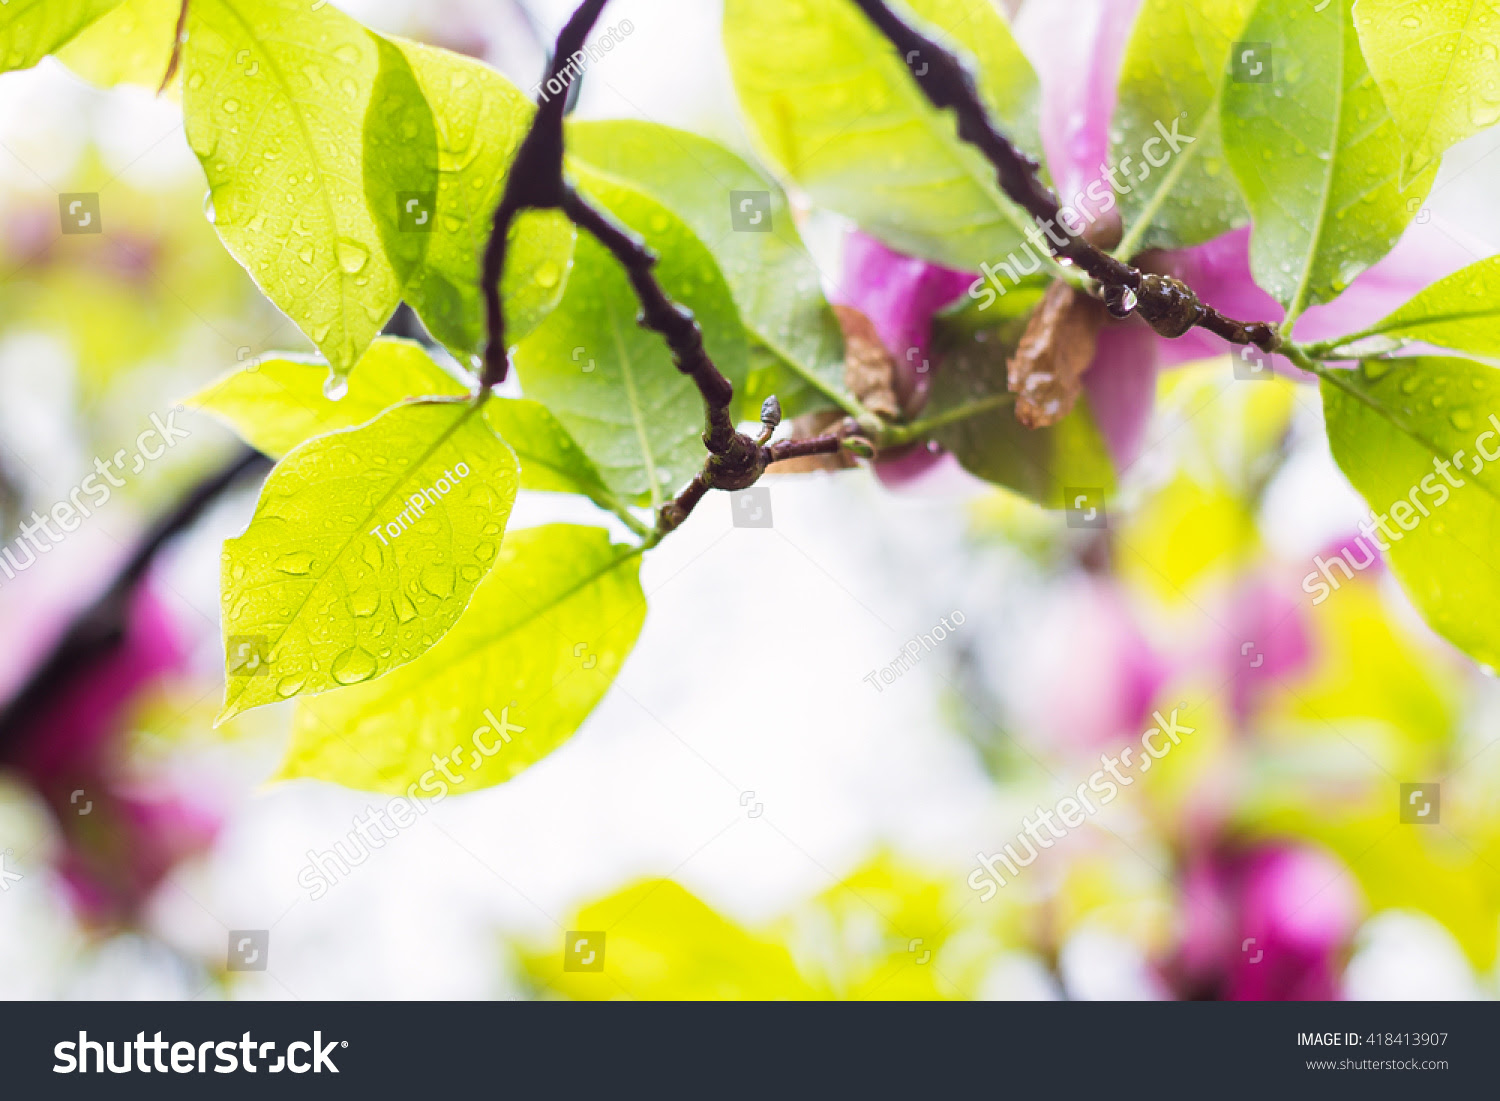 background, beautiful, blurred, bokeh, botanic, botanical, botany, close, copy, defocused, delicate, design, dew, drop, droplet, flora, floral, flower, focus, forest, fresh, freshness, garden, green, leaf, light, lush, magnolia, natural, nature, outdoors, park, pink, plant, rain, romance, romantic, season, selective, shallow, simple, space, spring, springtime, summer, tree, up, water, wet, yellow